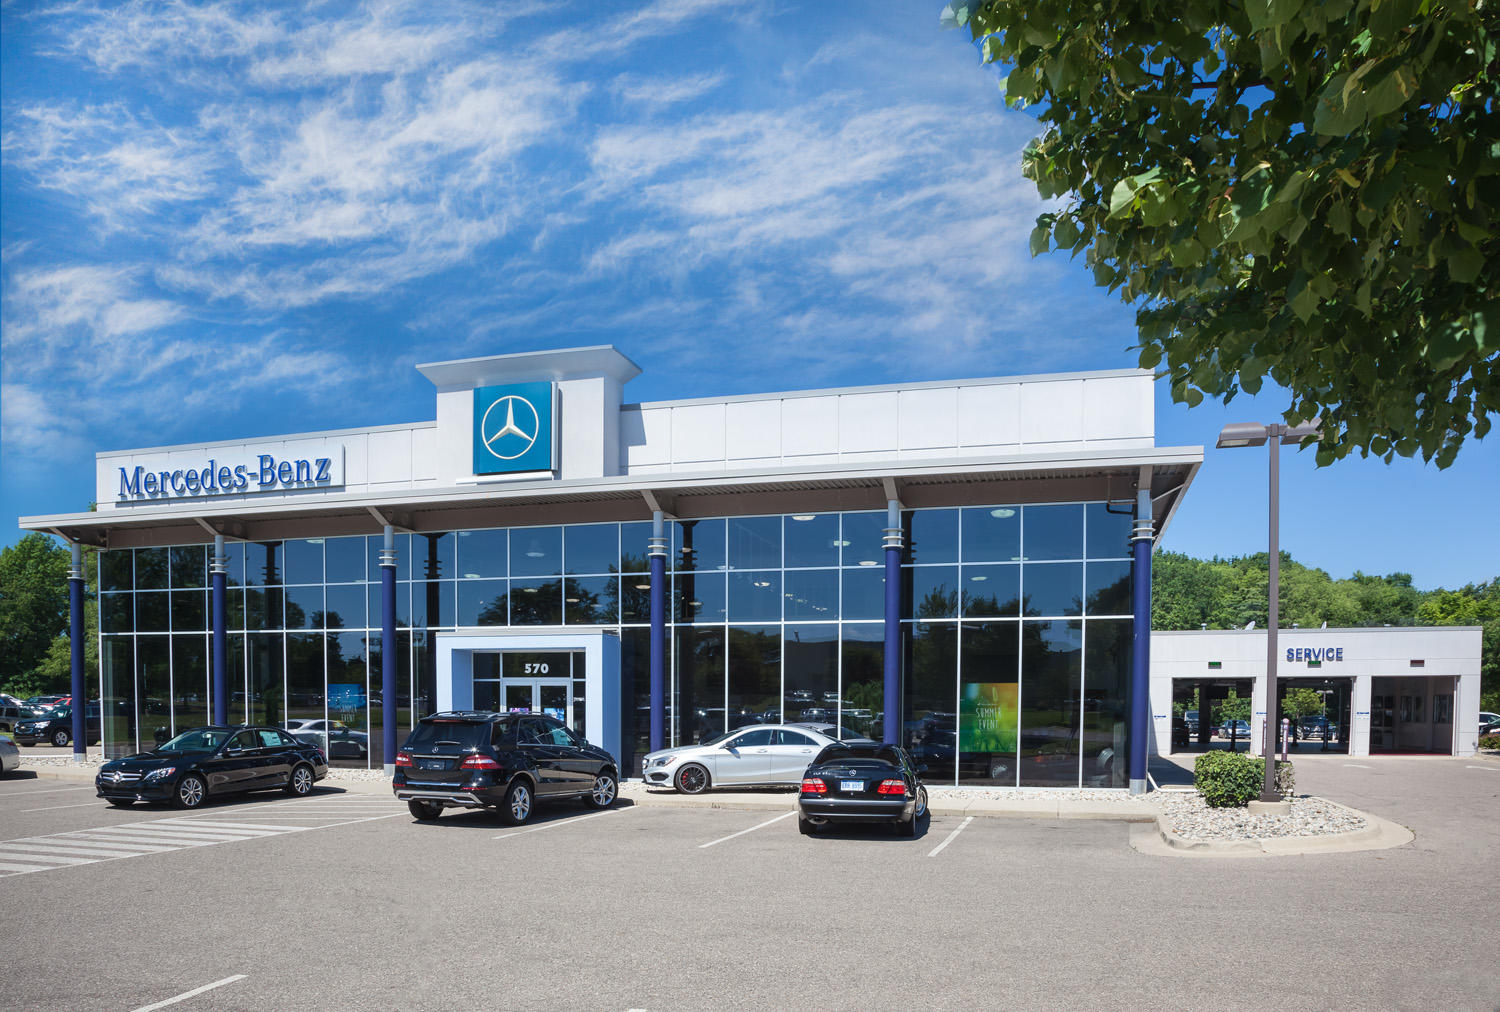 Mercedes benz of ann arbor in ann arbor mi whitepages for Mercedes benz bloomfield mi